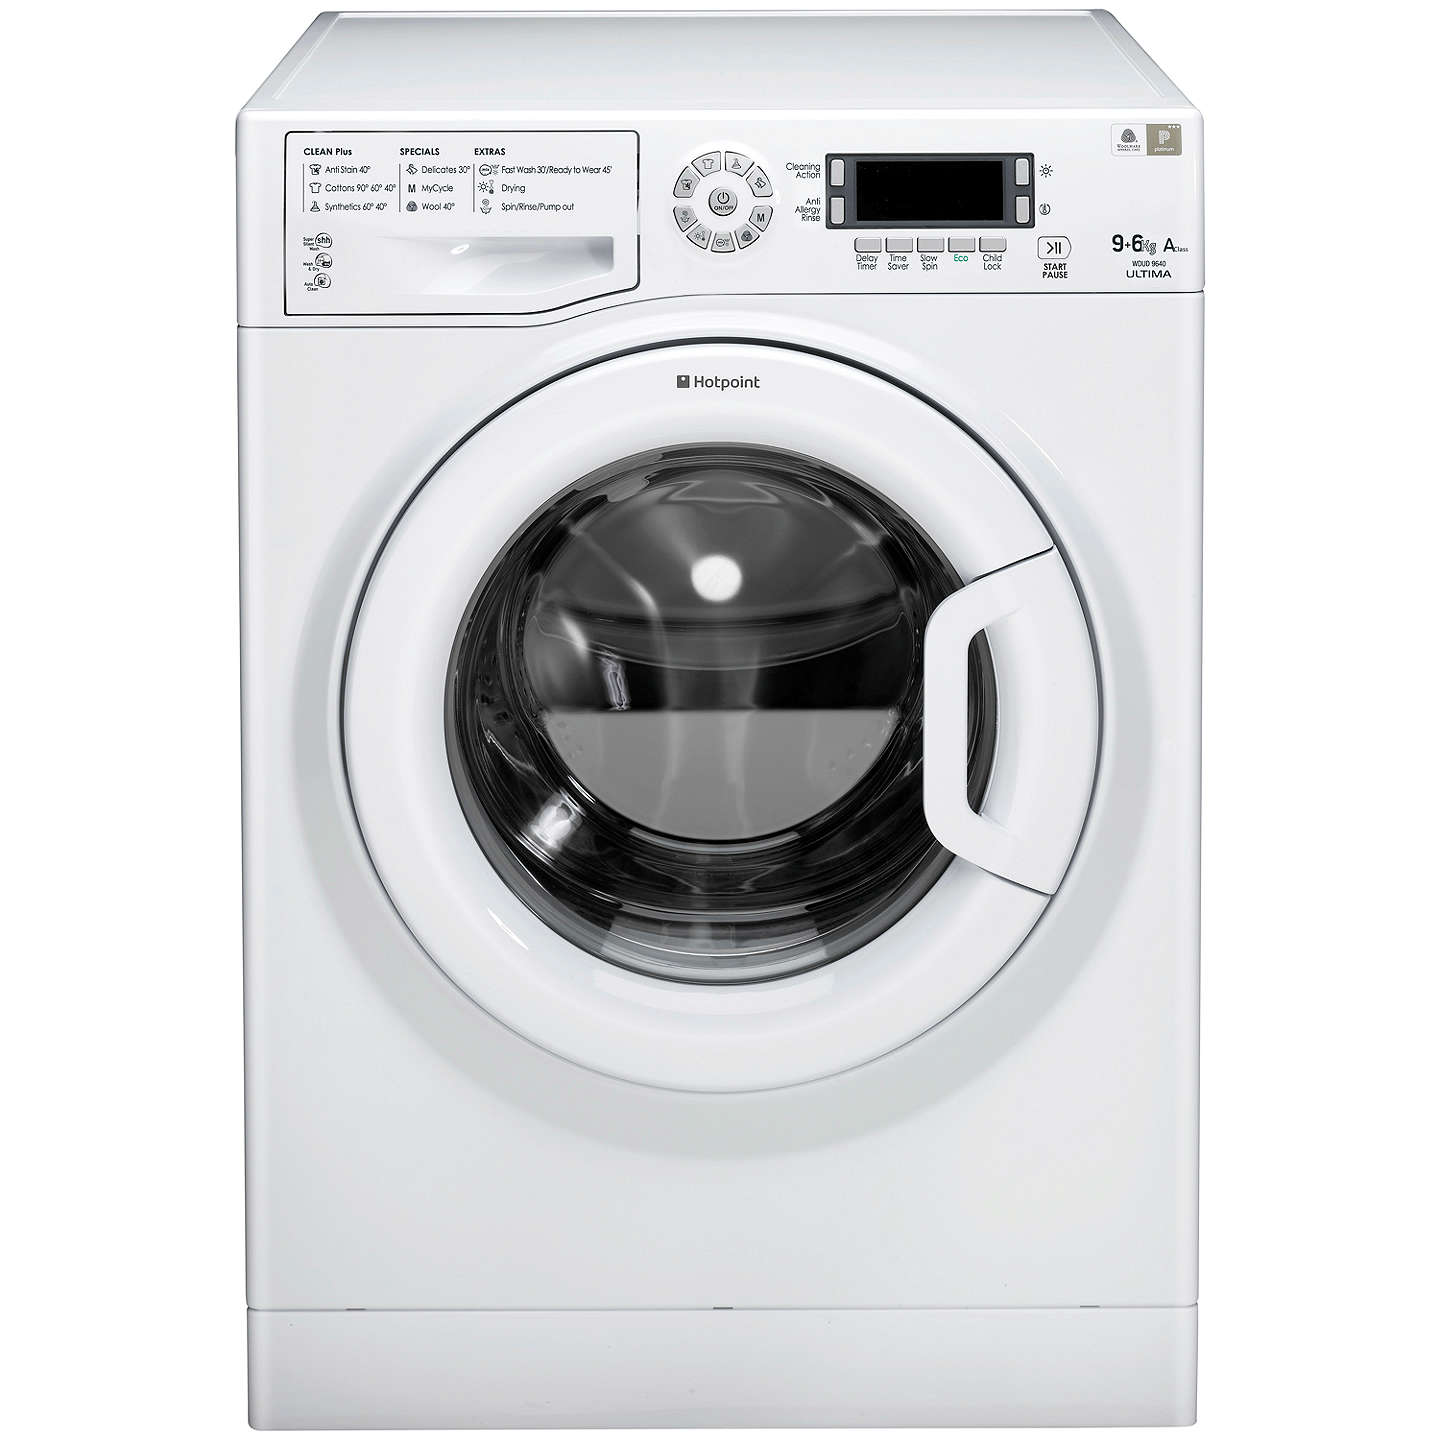 Buyhotpoint Wdud9640P Washer Dryer, 9Kg Wash6Kg Dry Load, A Energy